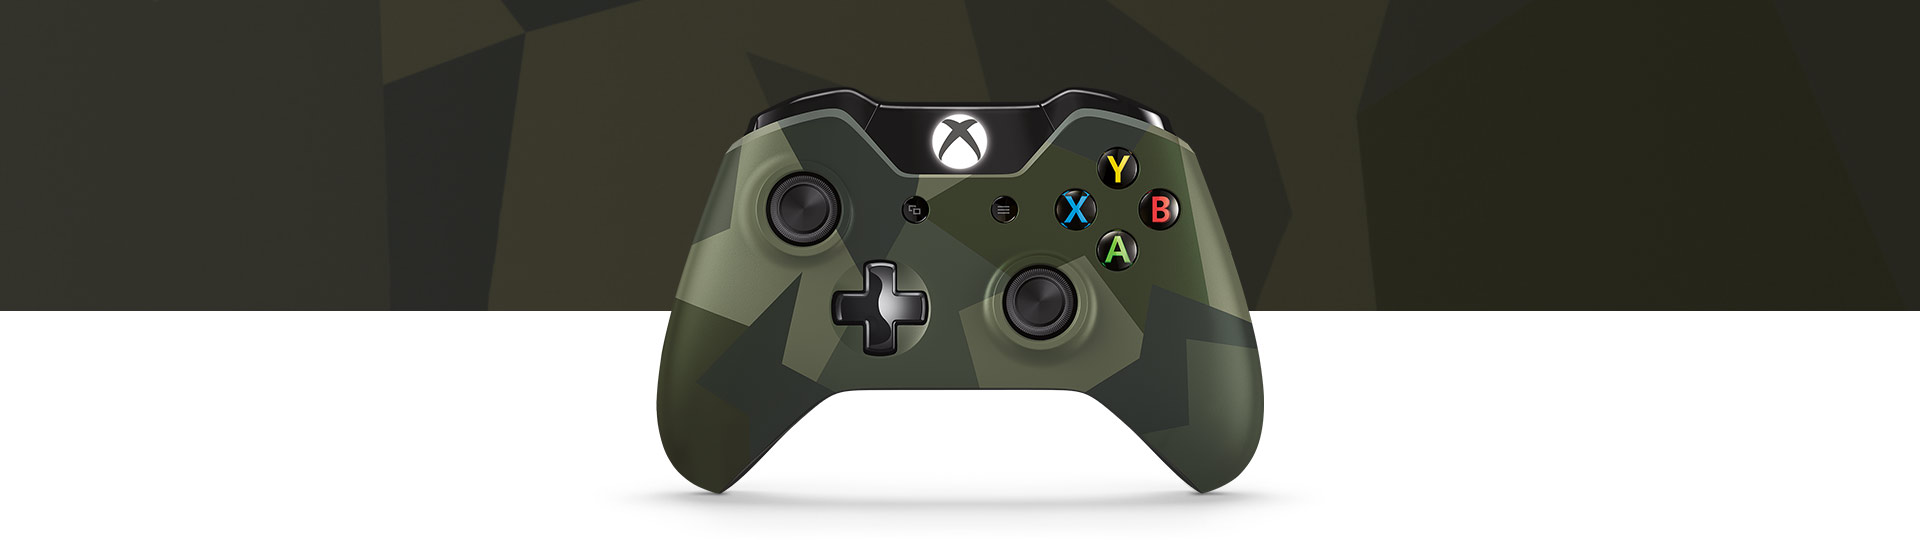 Armed Forces Wireless Controller